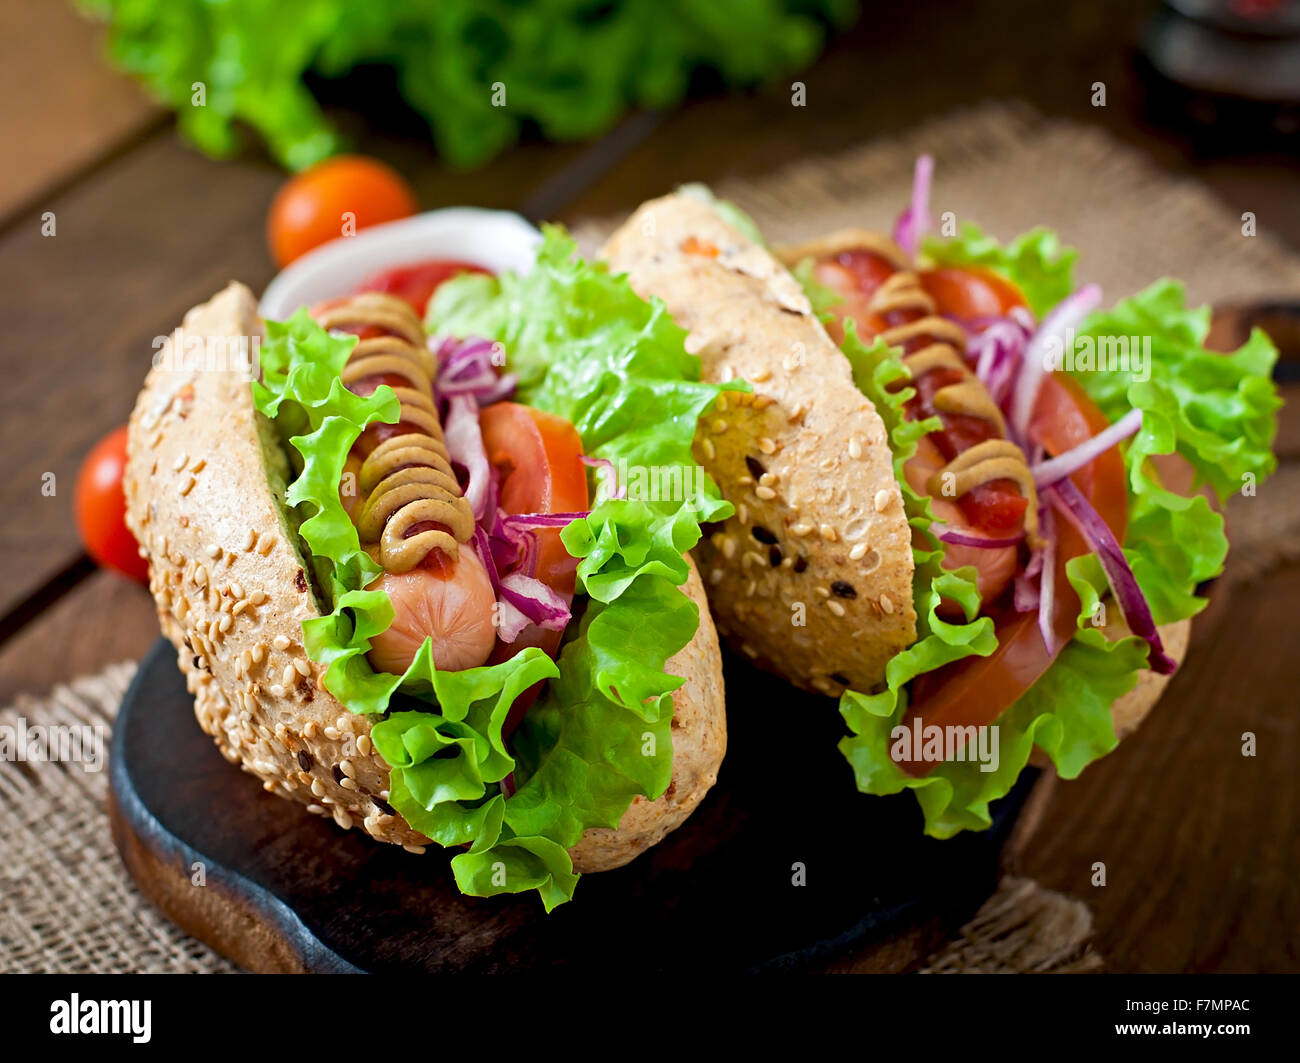 Hotdog with ketchup mustard and lettuce on wooden background - Stock Image